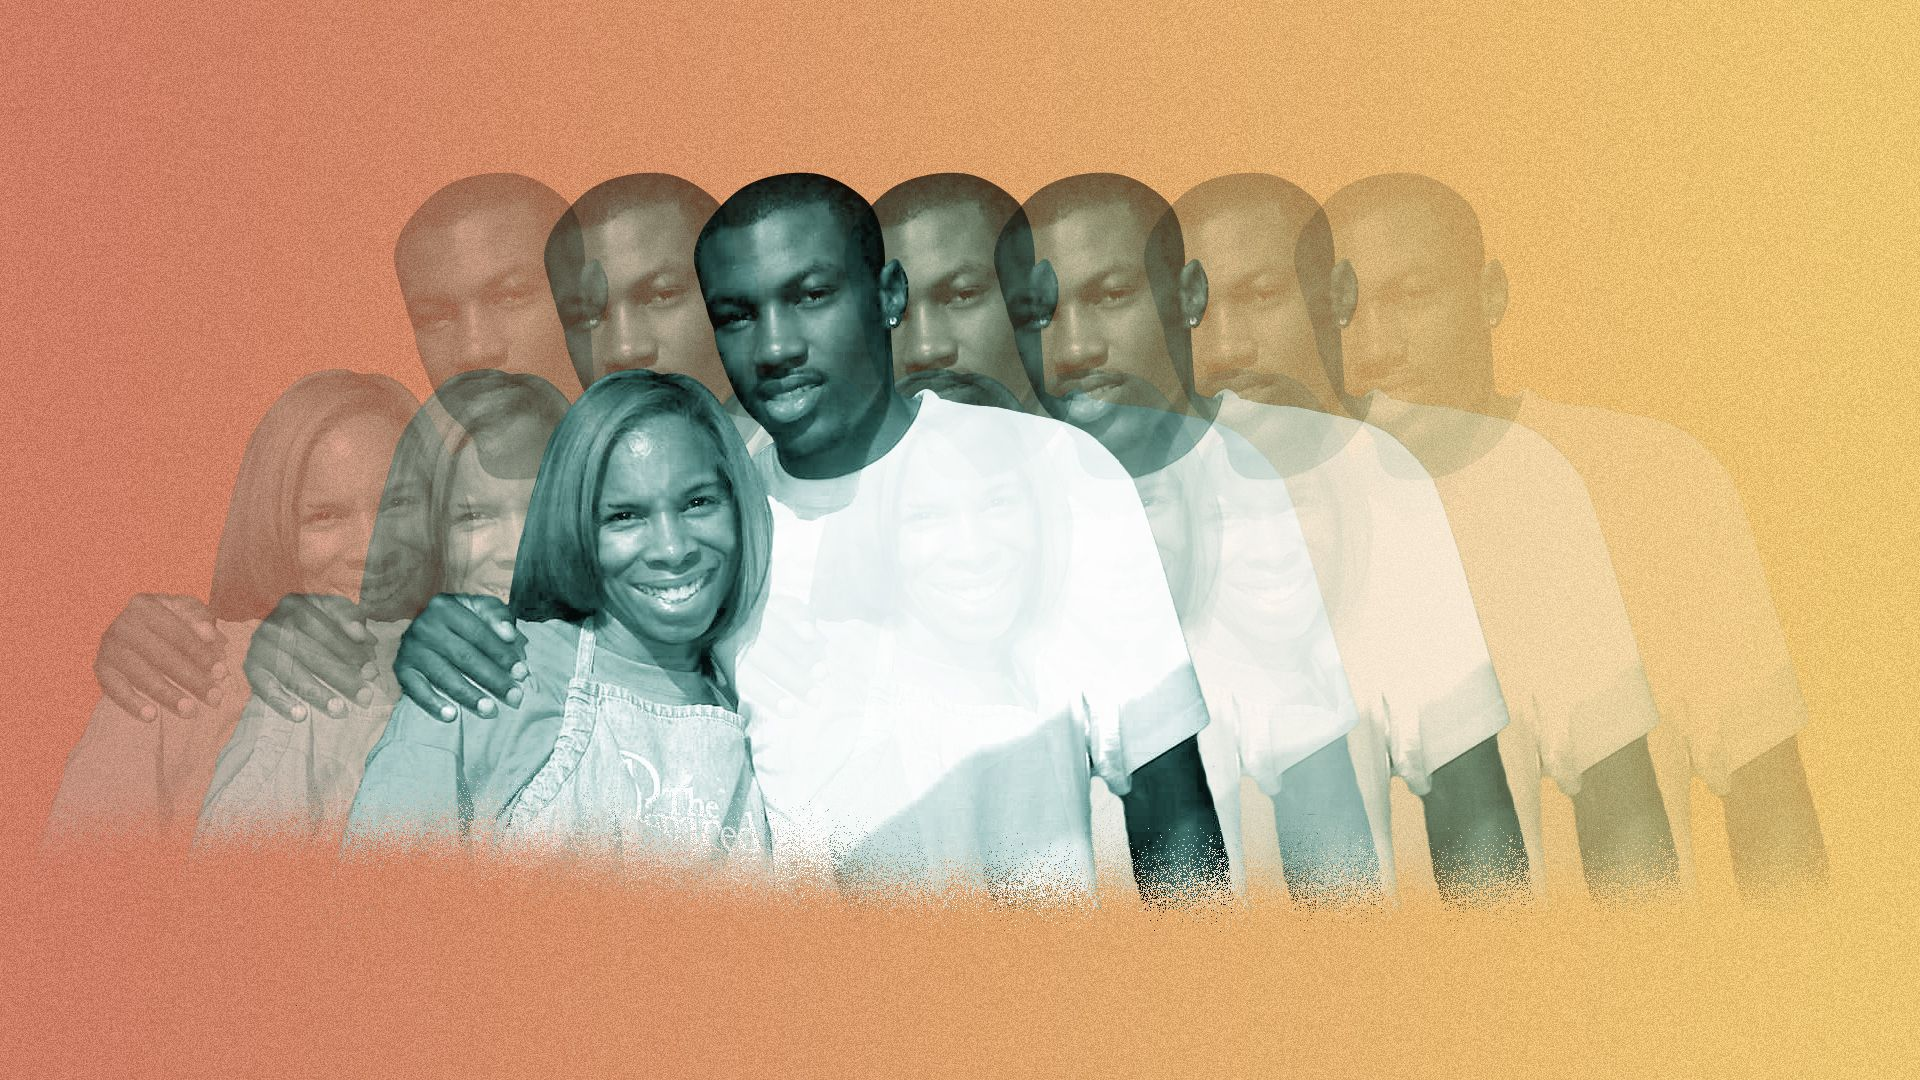 Photo illustration of a series of images of Khadeeja and Mikese Morse, some transparent.